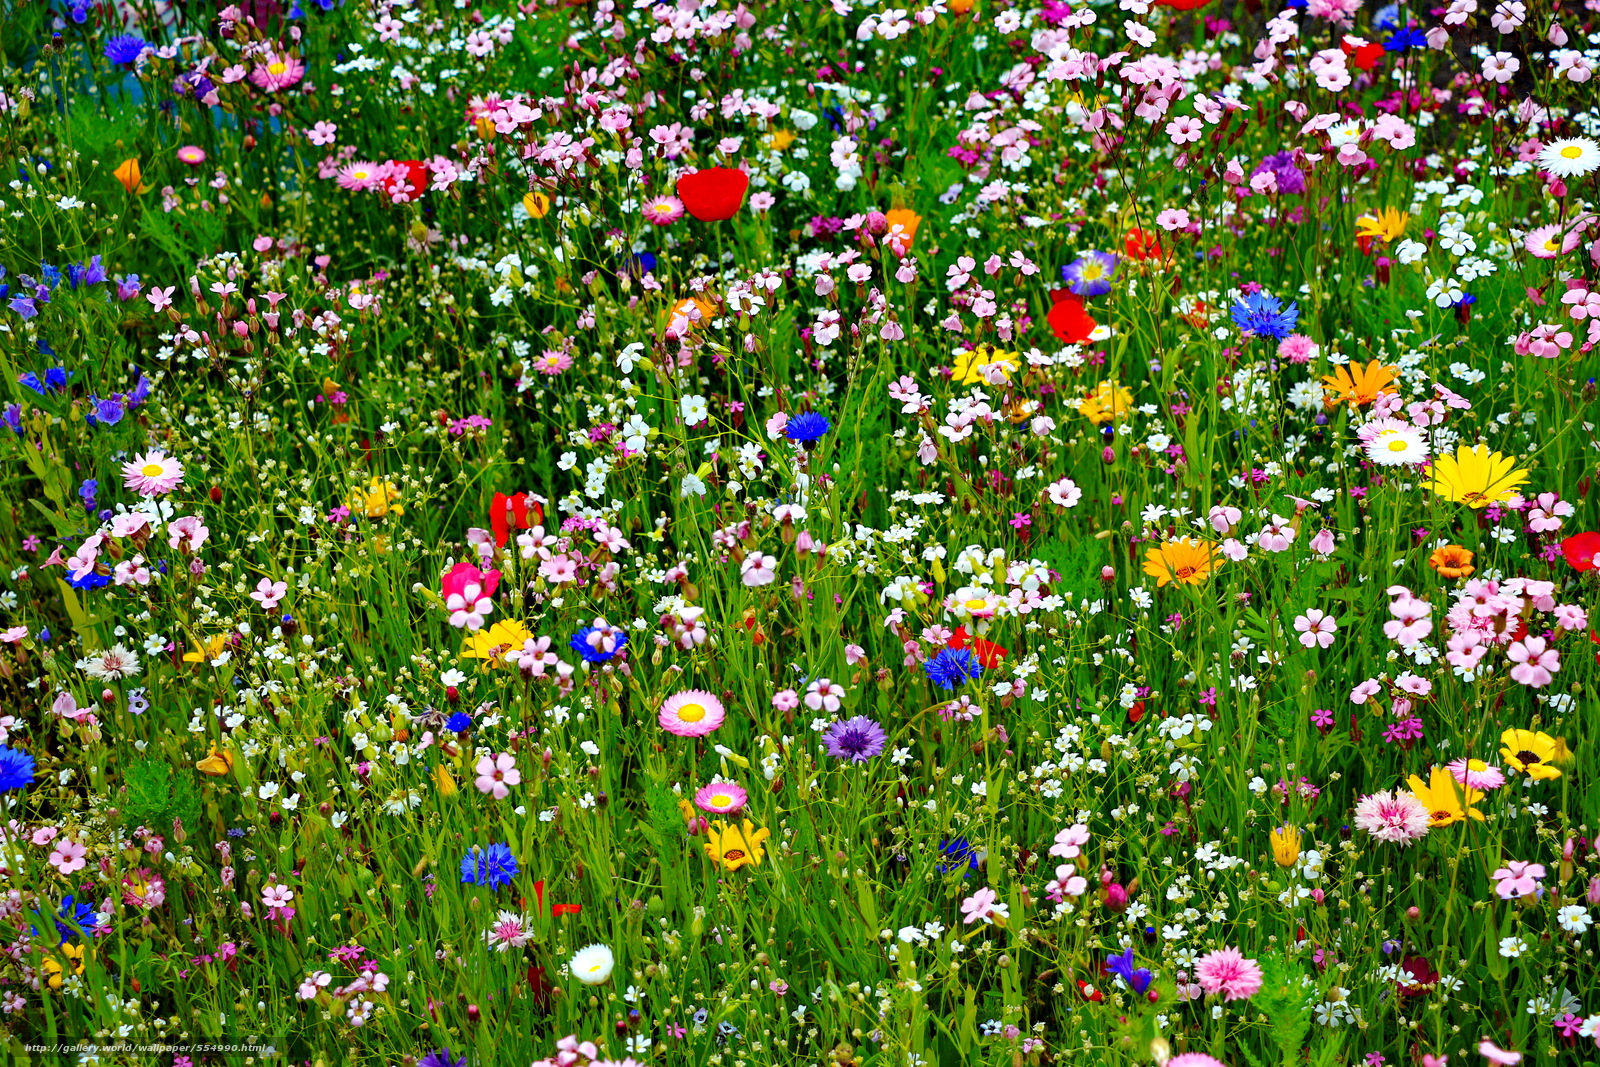 Download wallpaper field, Flowers, plants, flora free desktop ...: gde-fon.com/download/field_flowers_plants_flora/554990/5184x3456